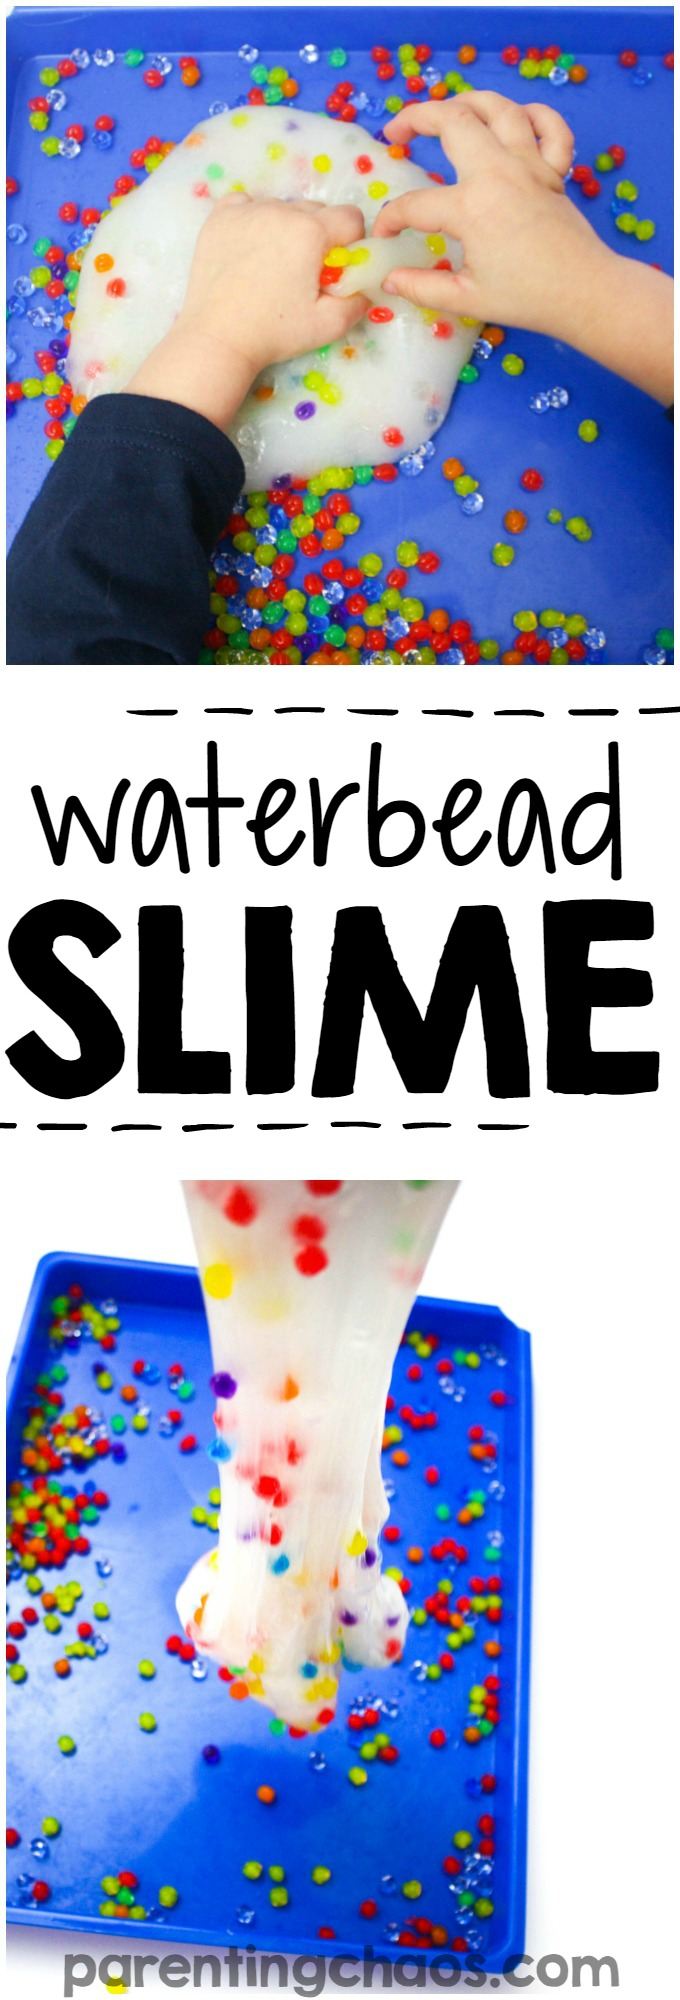 30 Days 30 Ways to Connect with Kids Waterbead Slime Day 19